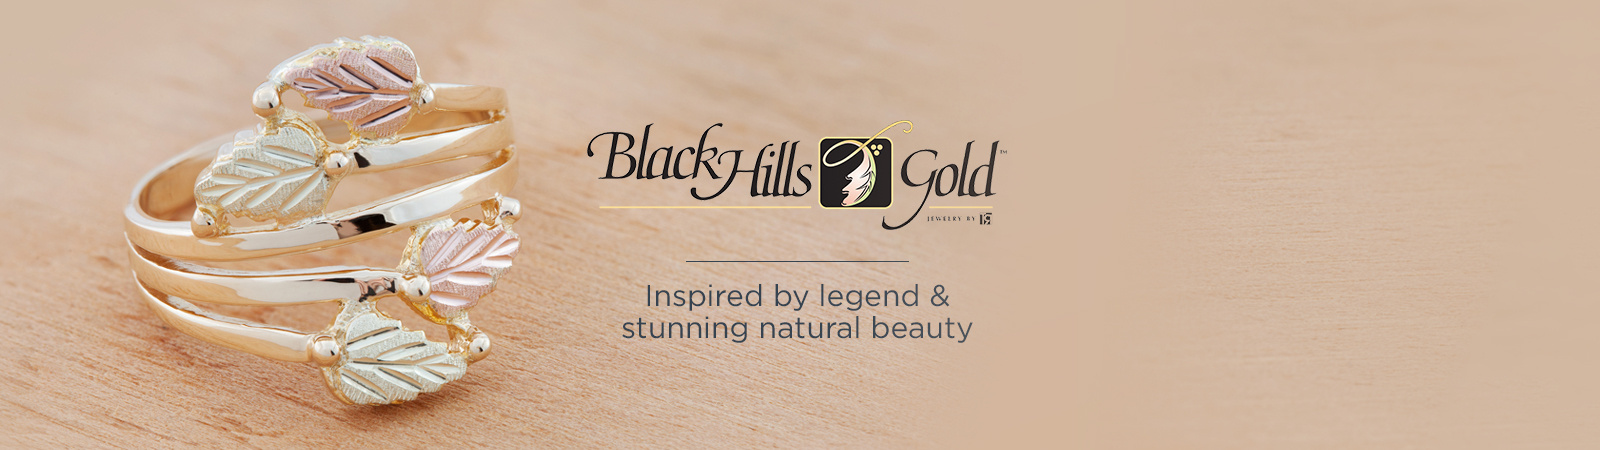 Black Hills Gold — Inspired by legend & stunning natural beauty